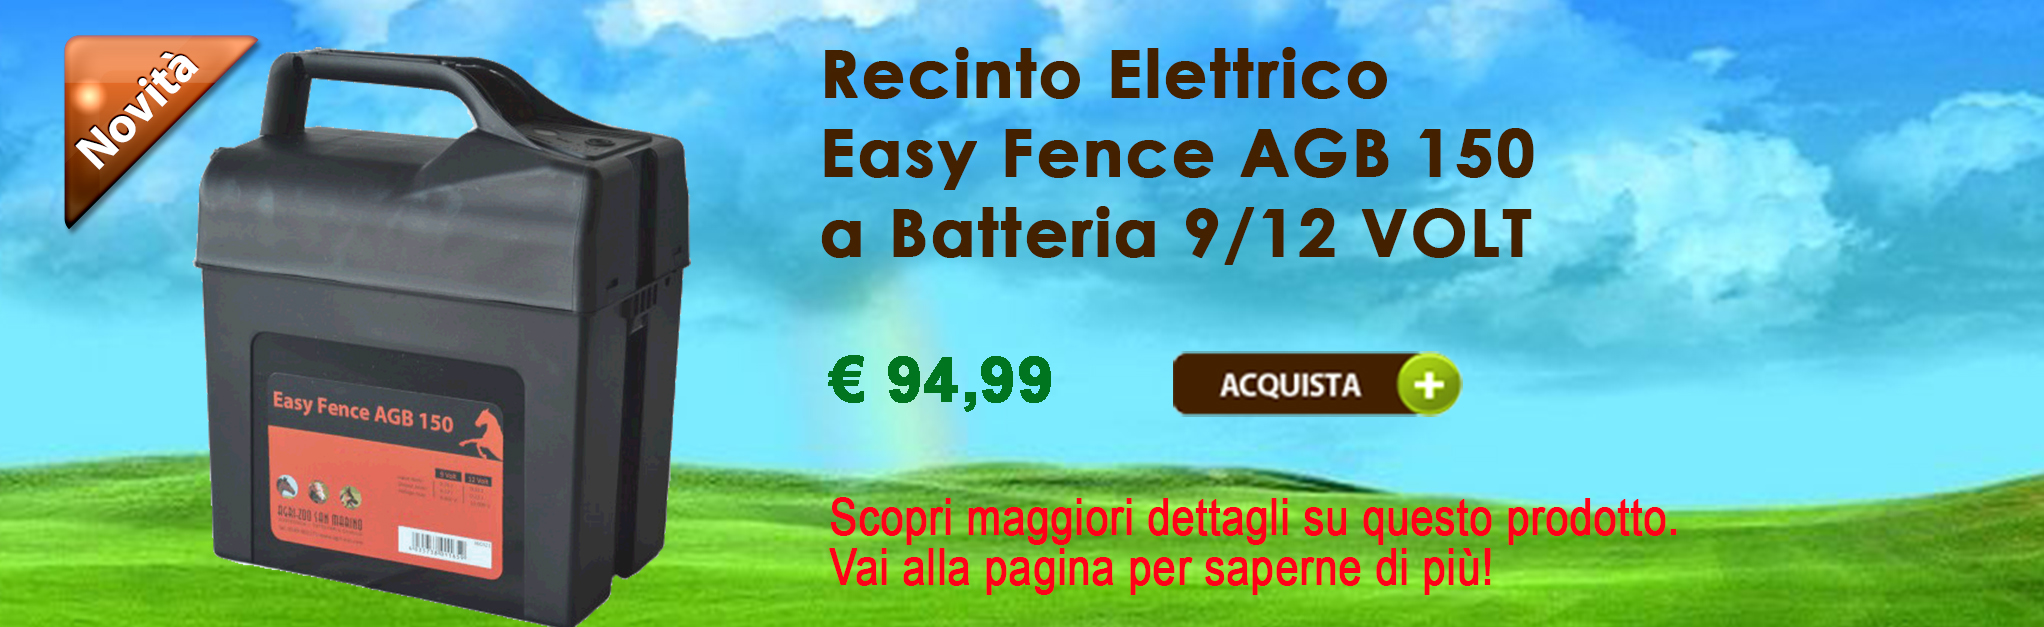 Easy Fence AGB 150